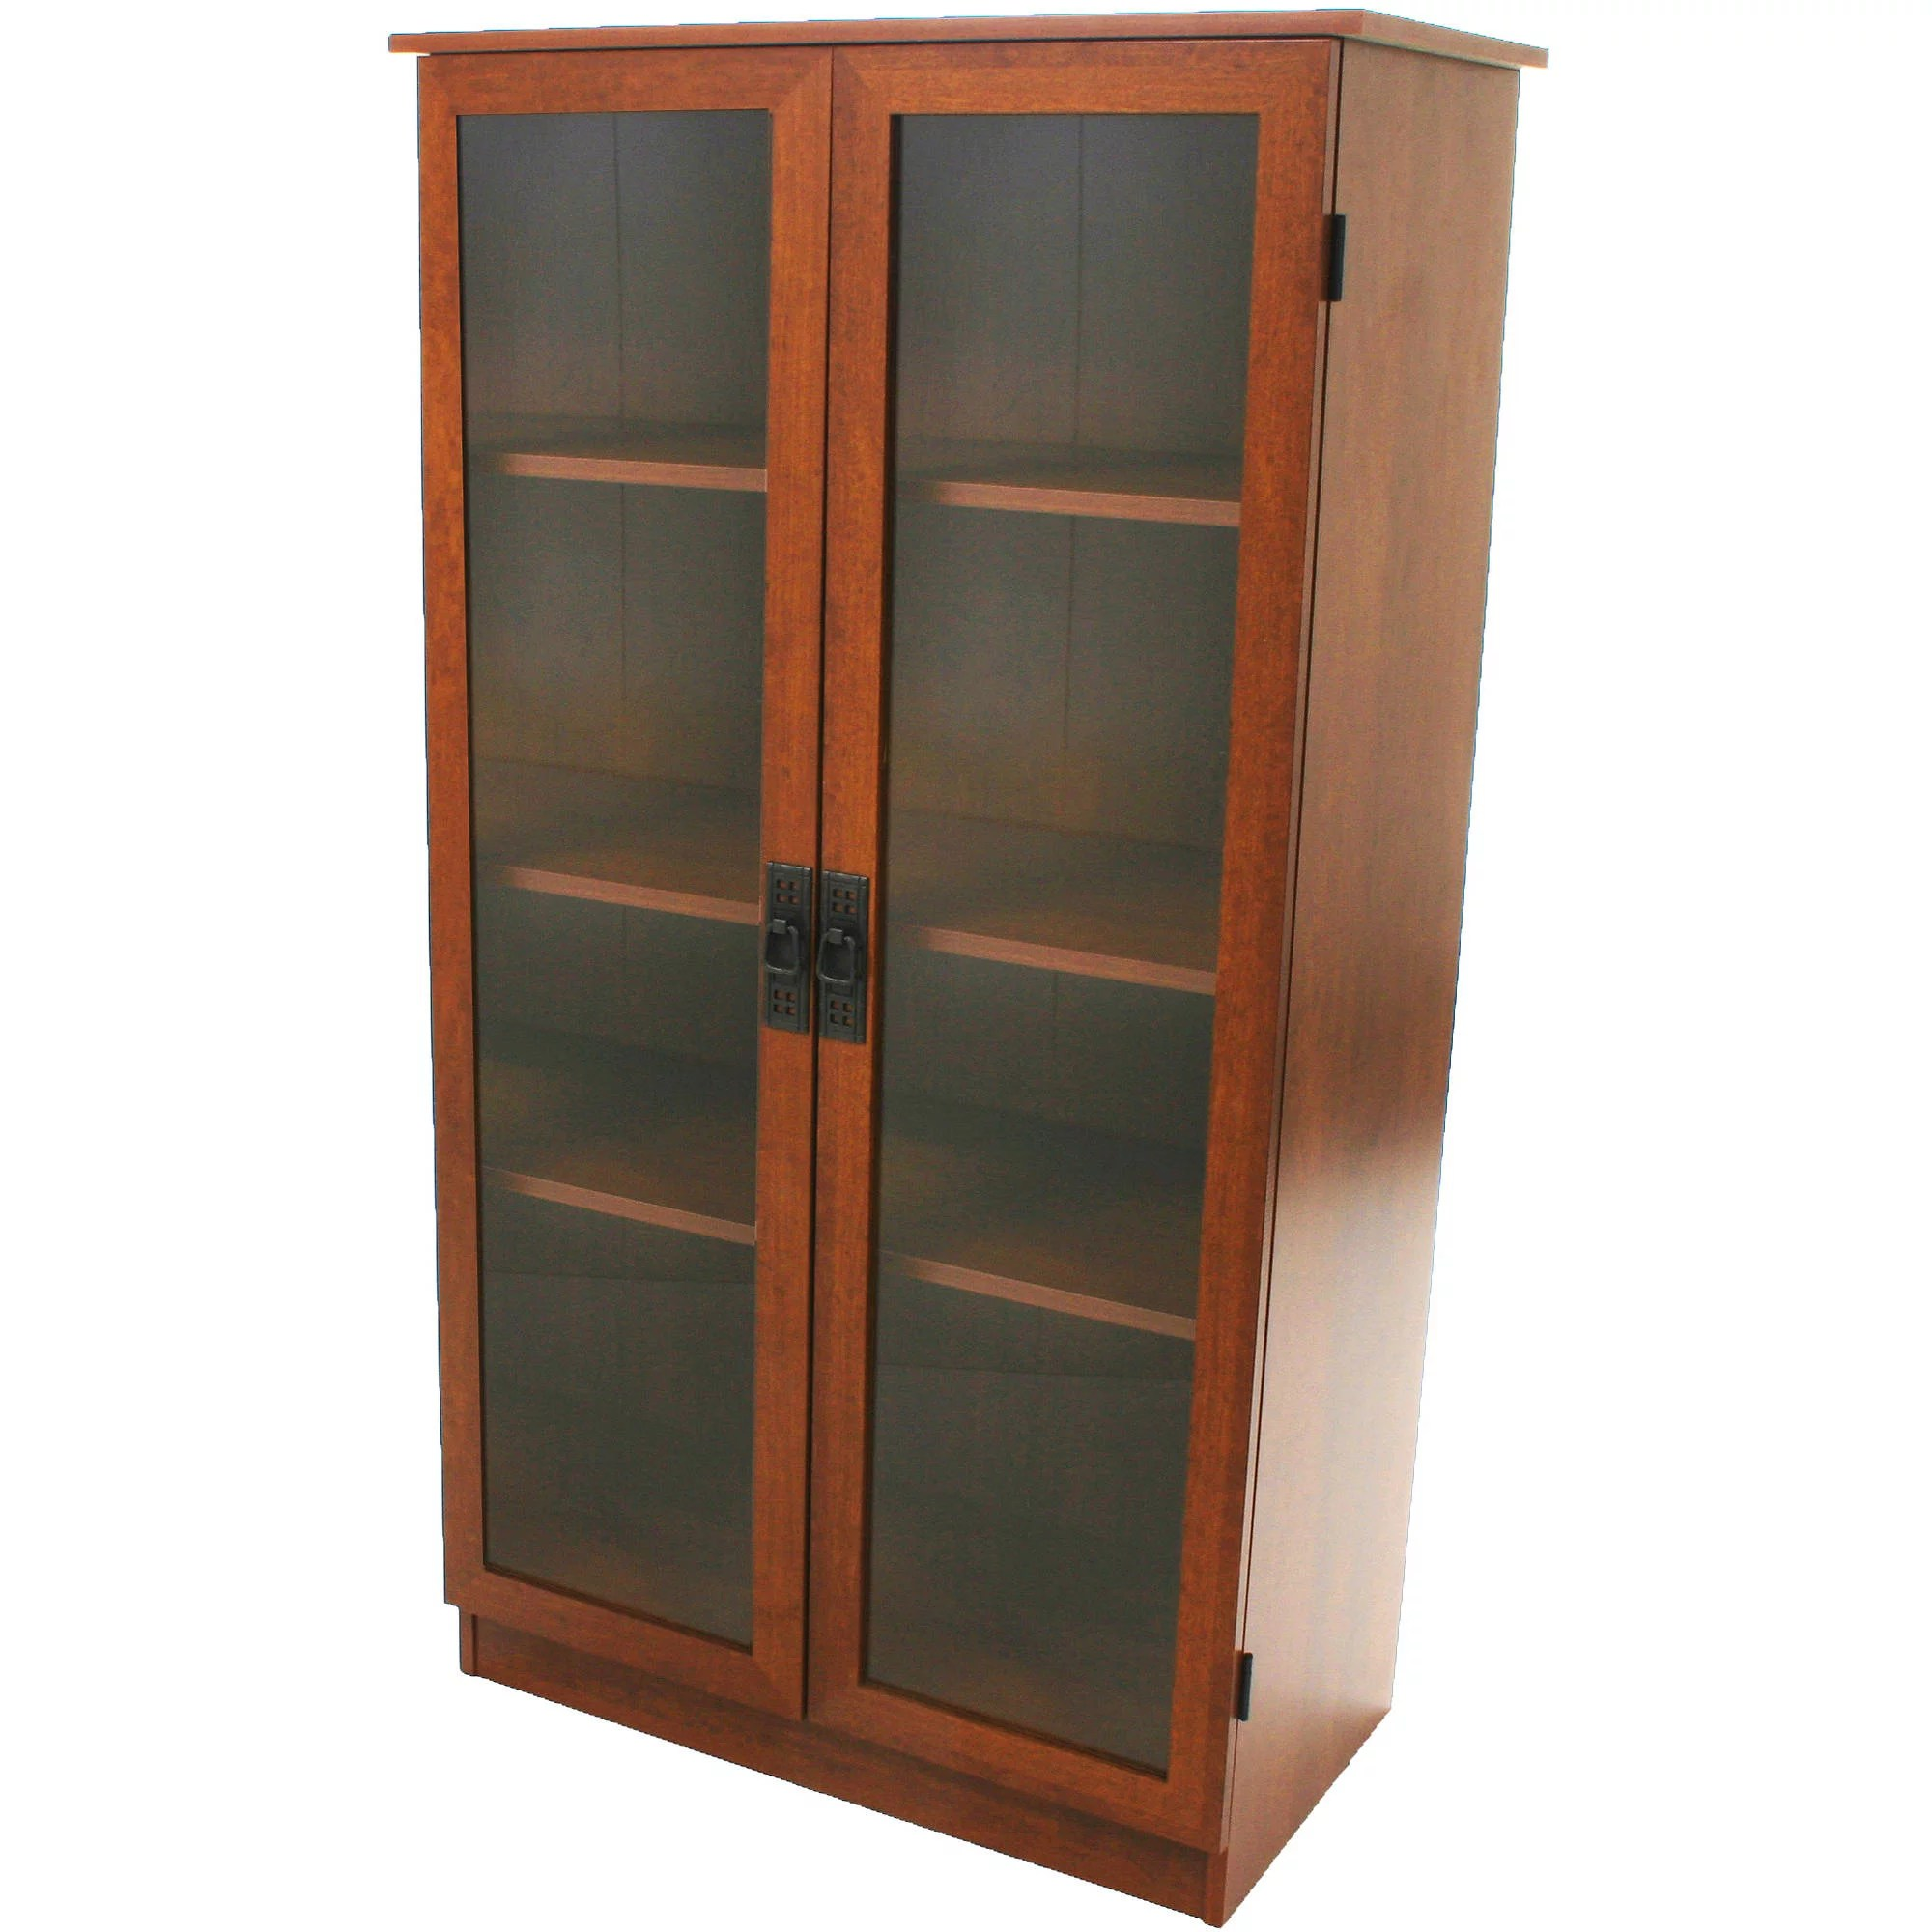 Bookcase Cabinet Details About Bookcase Storage Cabinet 4 Shelves 2 Glass Doors Bookshelf Brown Oak Finish Home